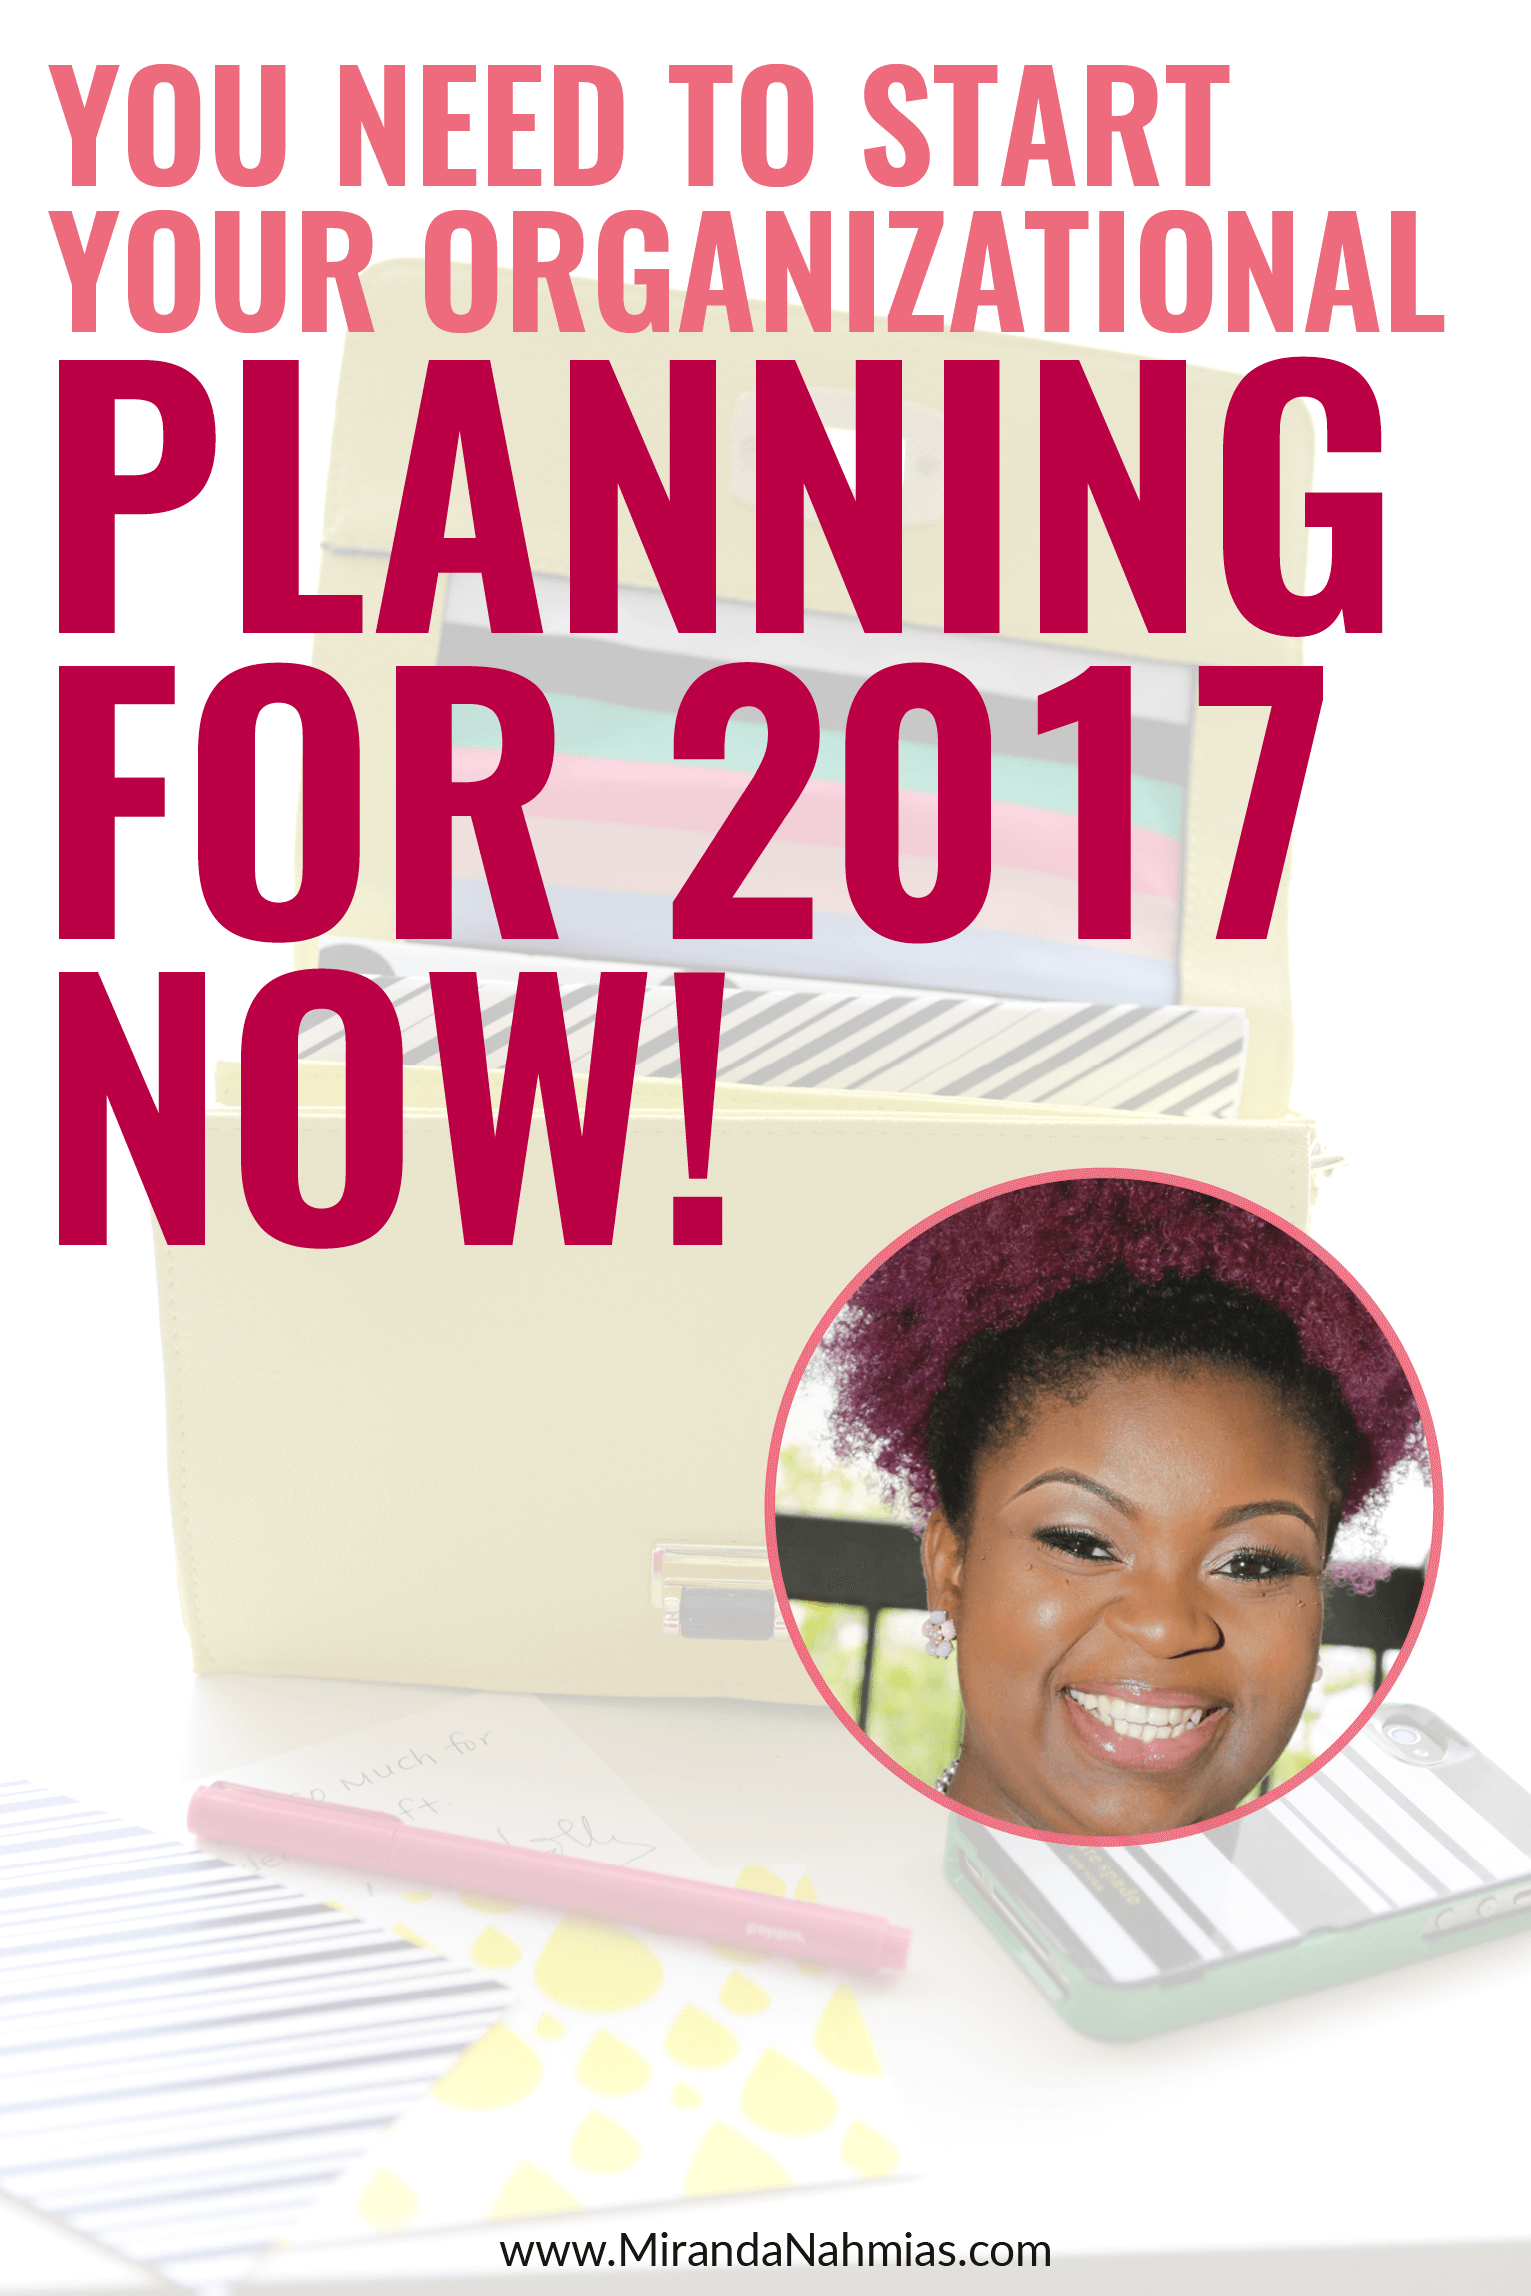 You Need to Start Organizational Planning for 2017 Now! // Miranda Nahmias